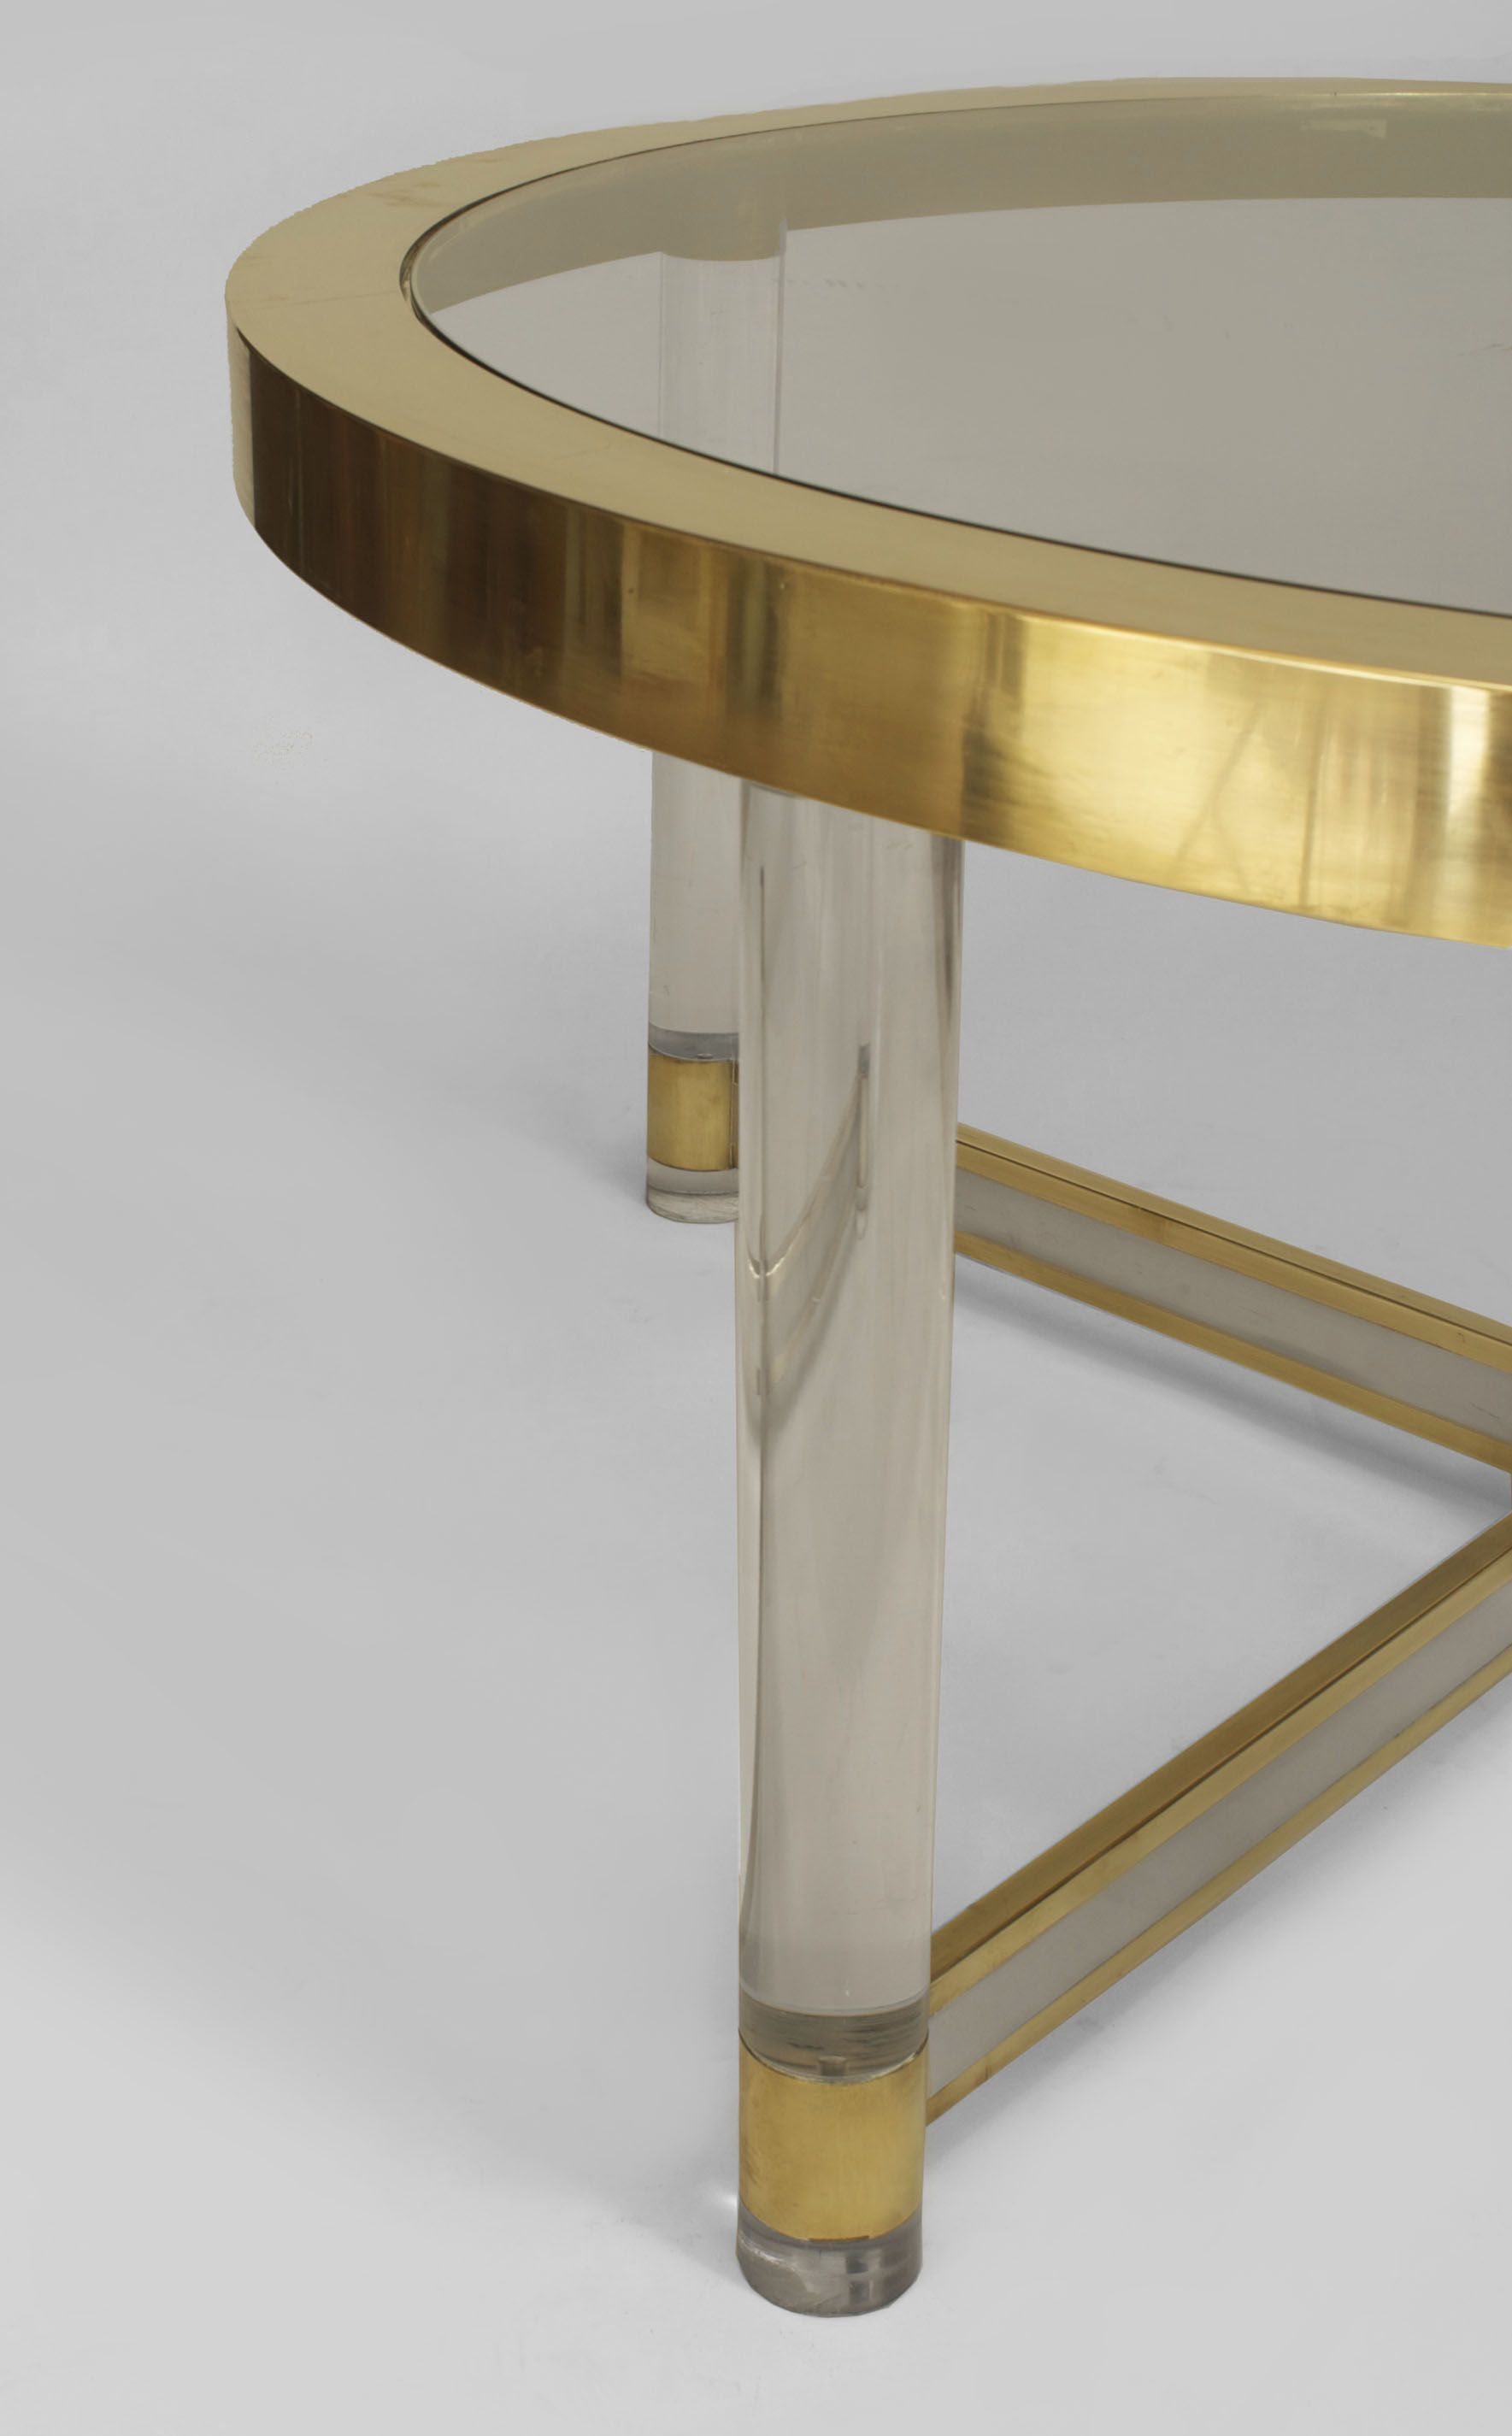 French Mid Century Glass And Brass Dining Table 1 Brass Dining Table Glass Coffee Table Acrylic Side Table [ 2850 x 1769 Pixel ]